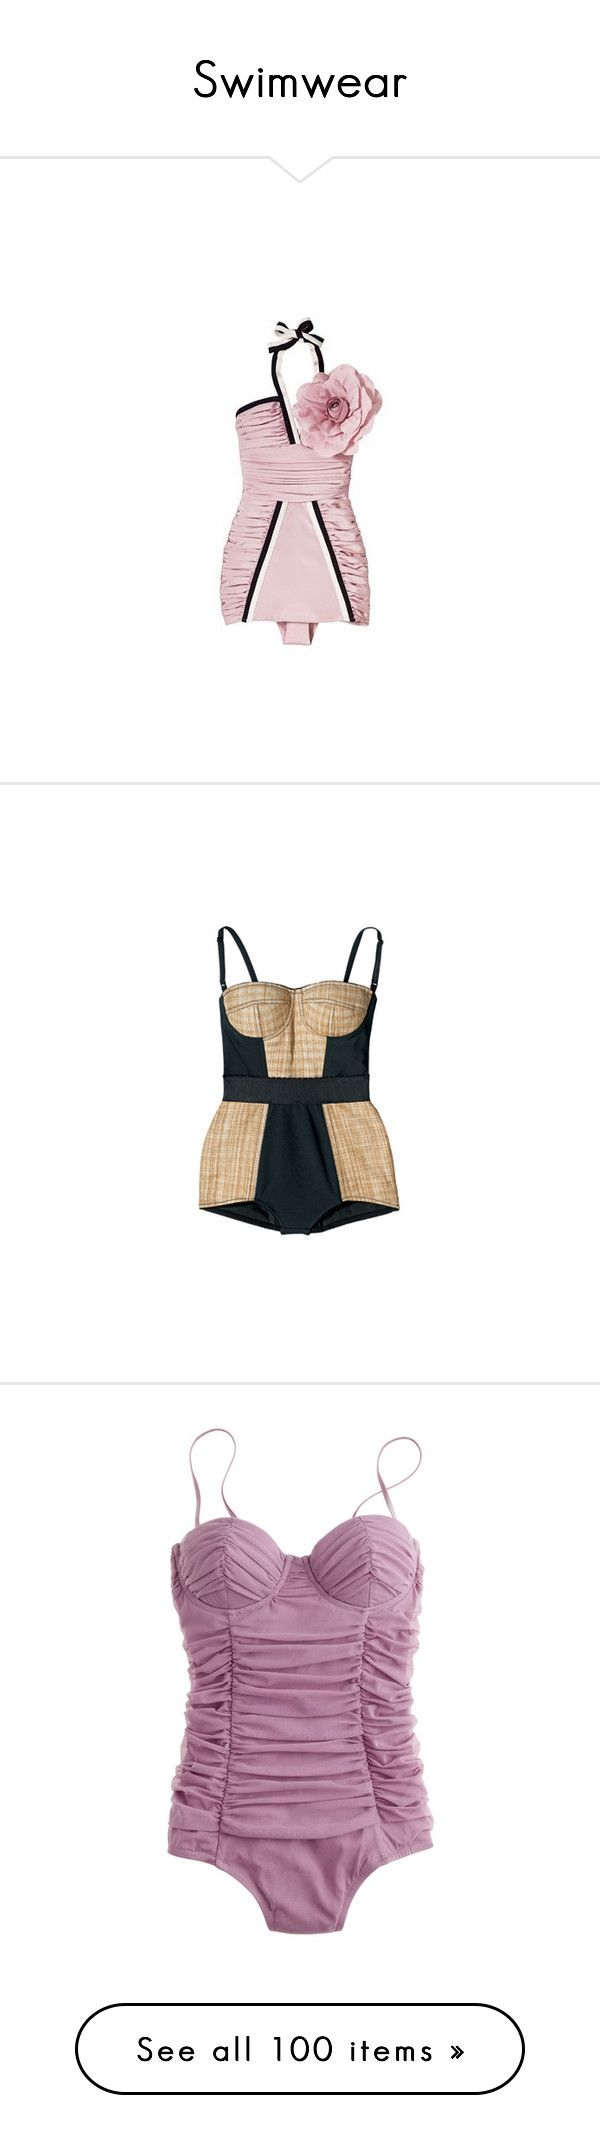 """""""Swimwear"""" by kiteshop ❤ liked on Polyvore featuring swimwear, one-piece swimsuits, swimsuit, dresses, lingerie, bathing suit, swim suits, one piece swimsuits, swimming costume and swimsuit swimwear"""